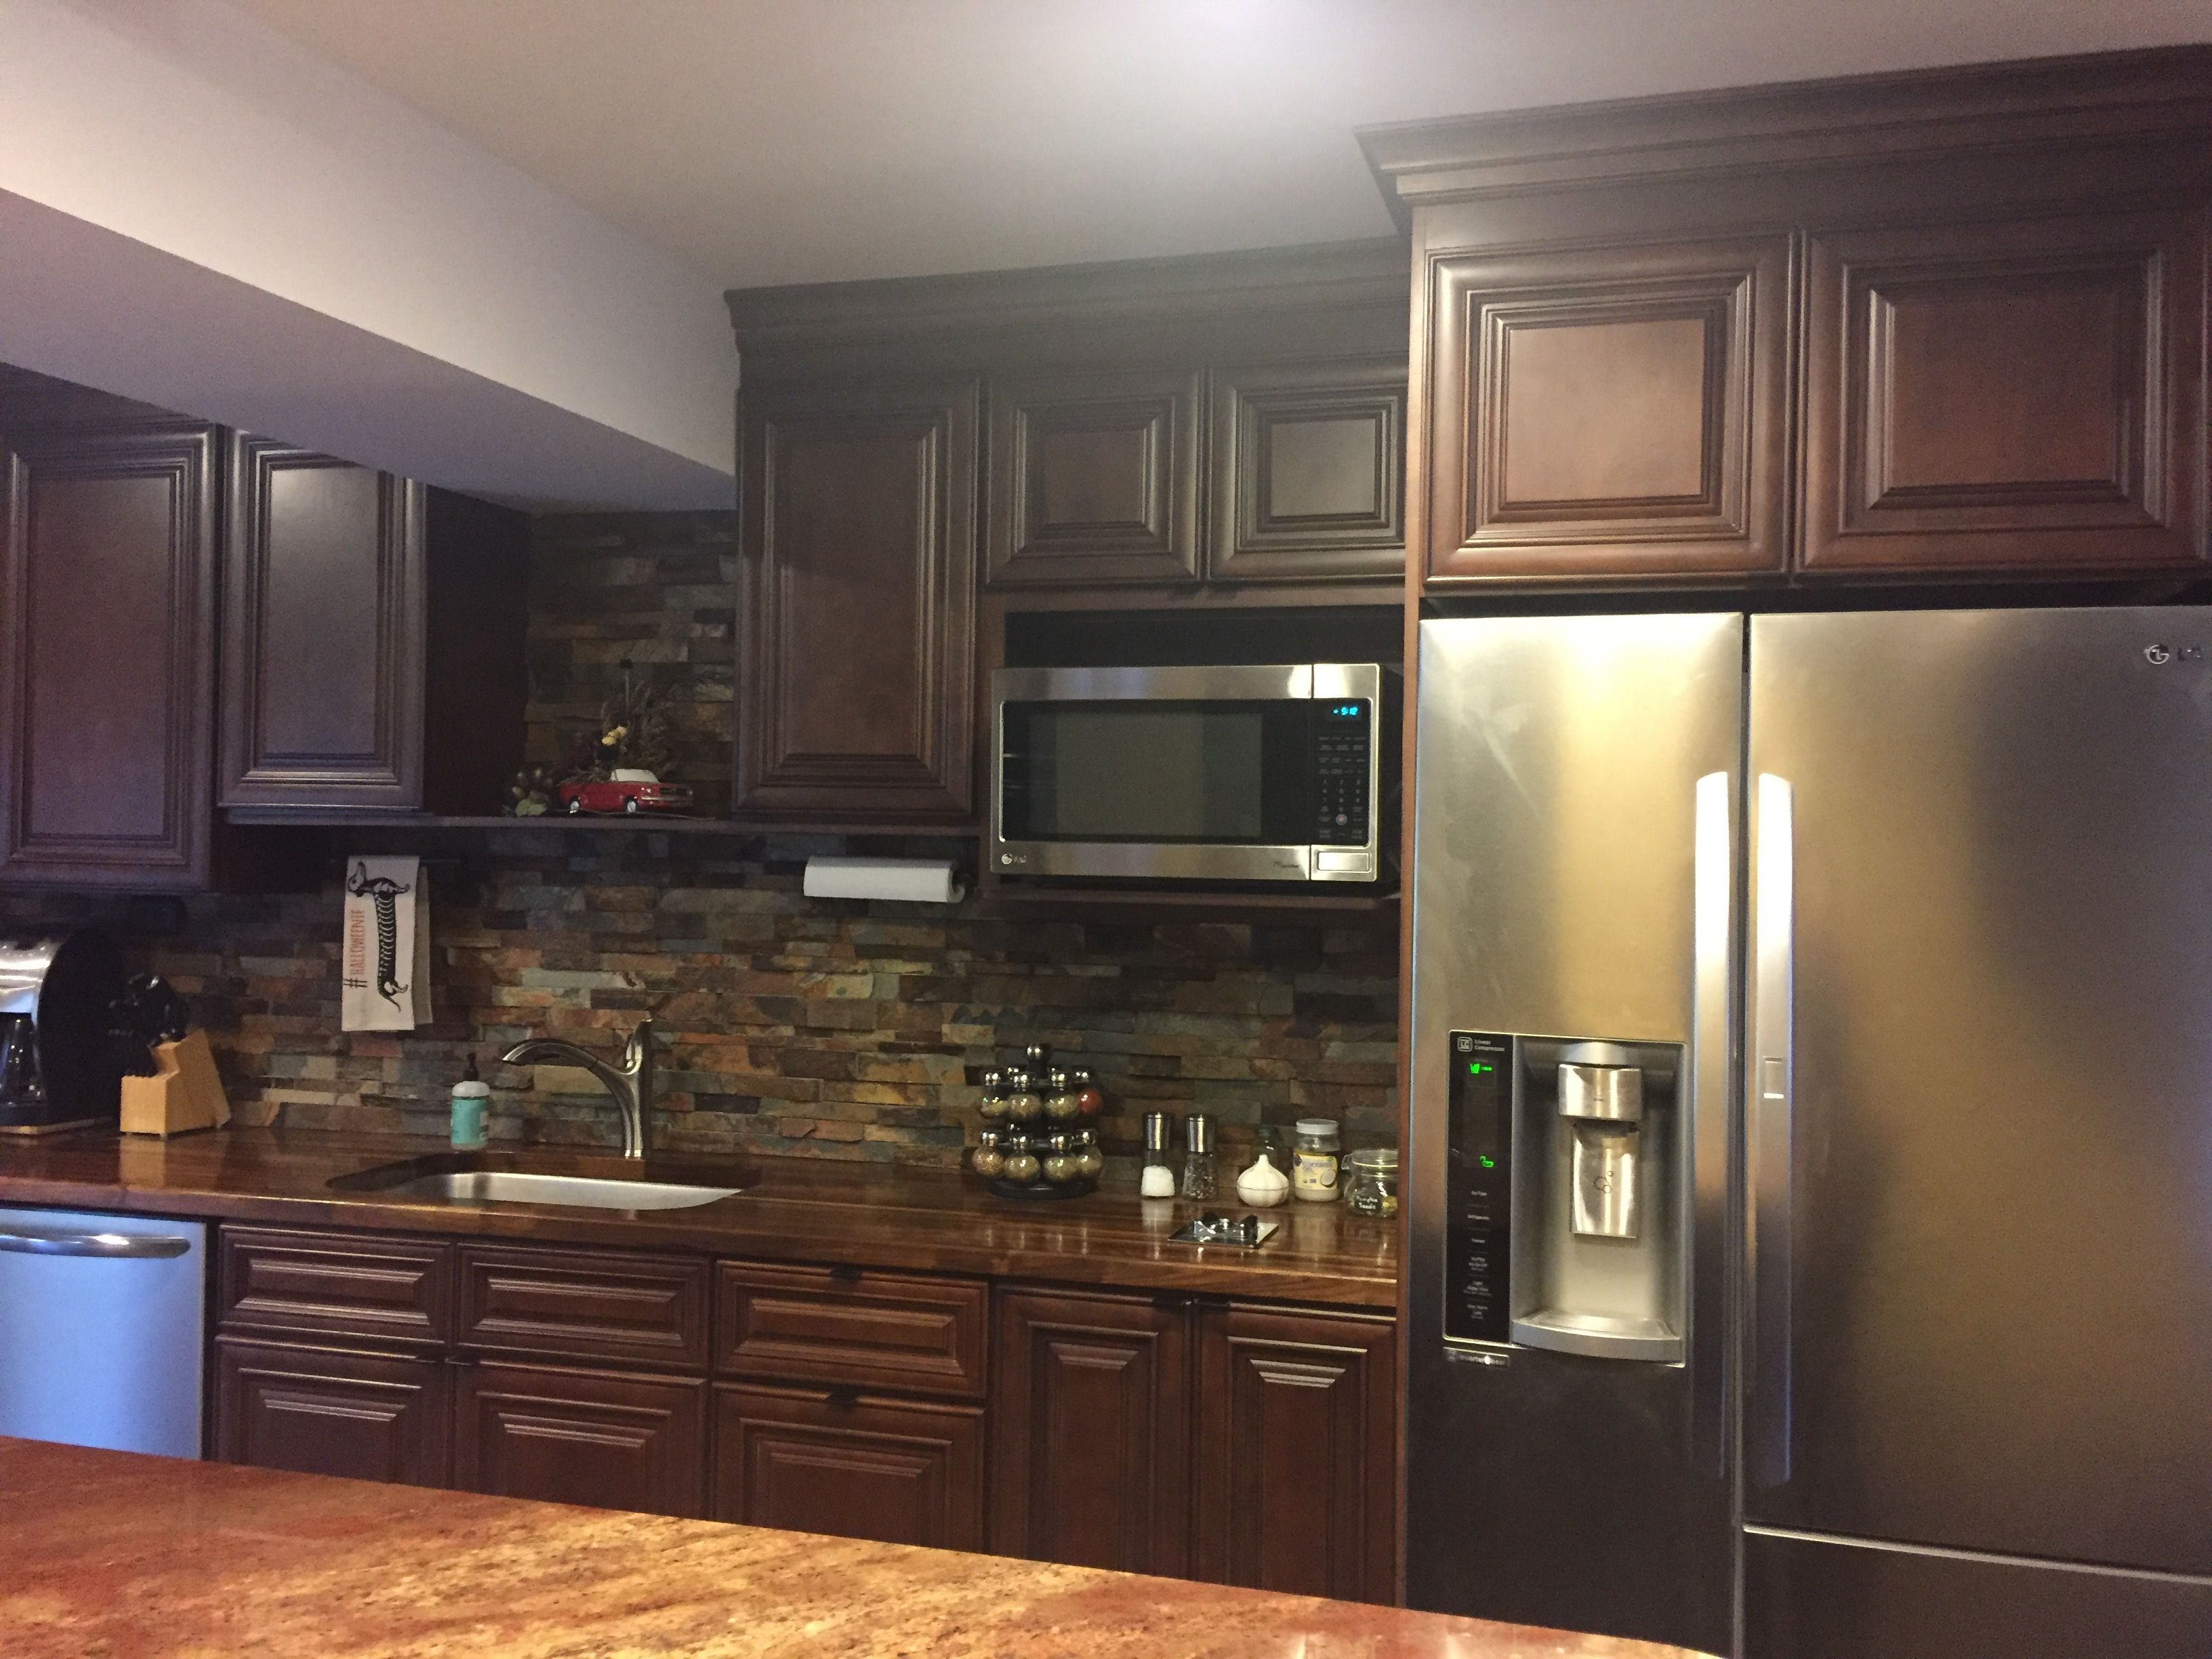 Lily ann cabinets review - Hello Dear Friends Charleston Saddle Kitchen Cabinets Lily Ann Cabinets Customer